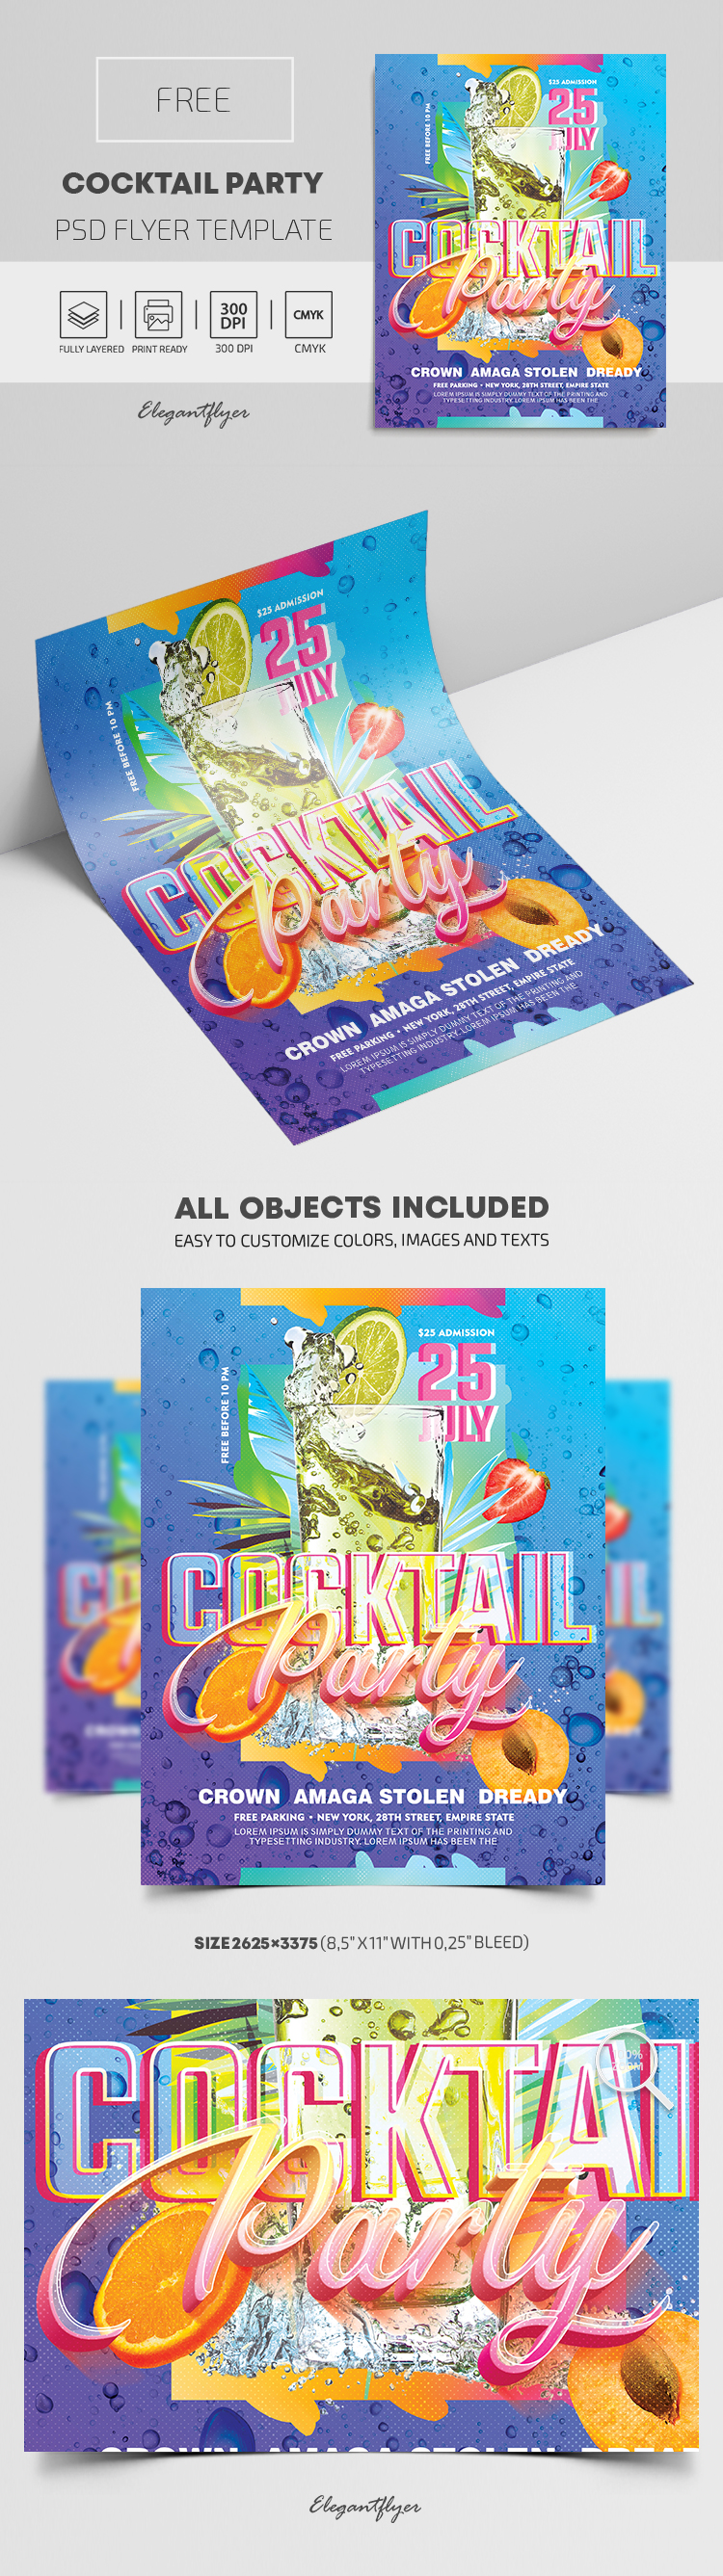 Cocktail Party – Free Flyer PSD Template